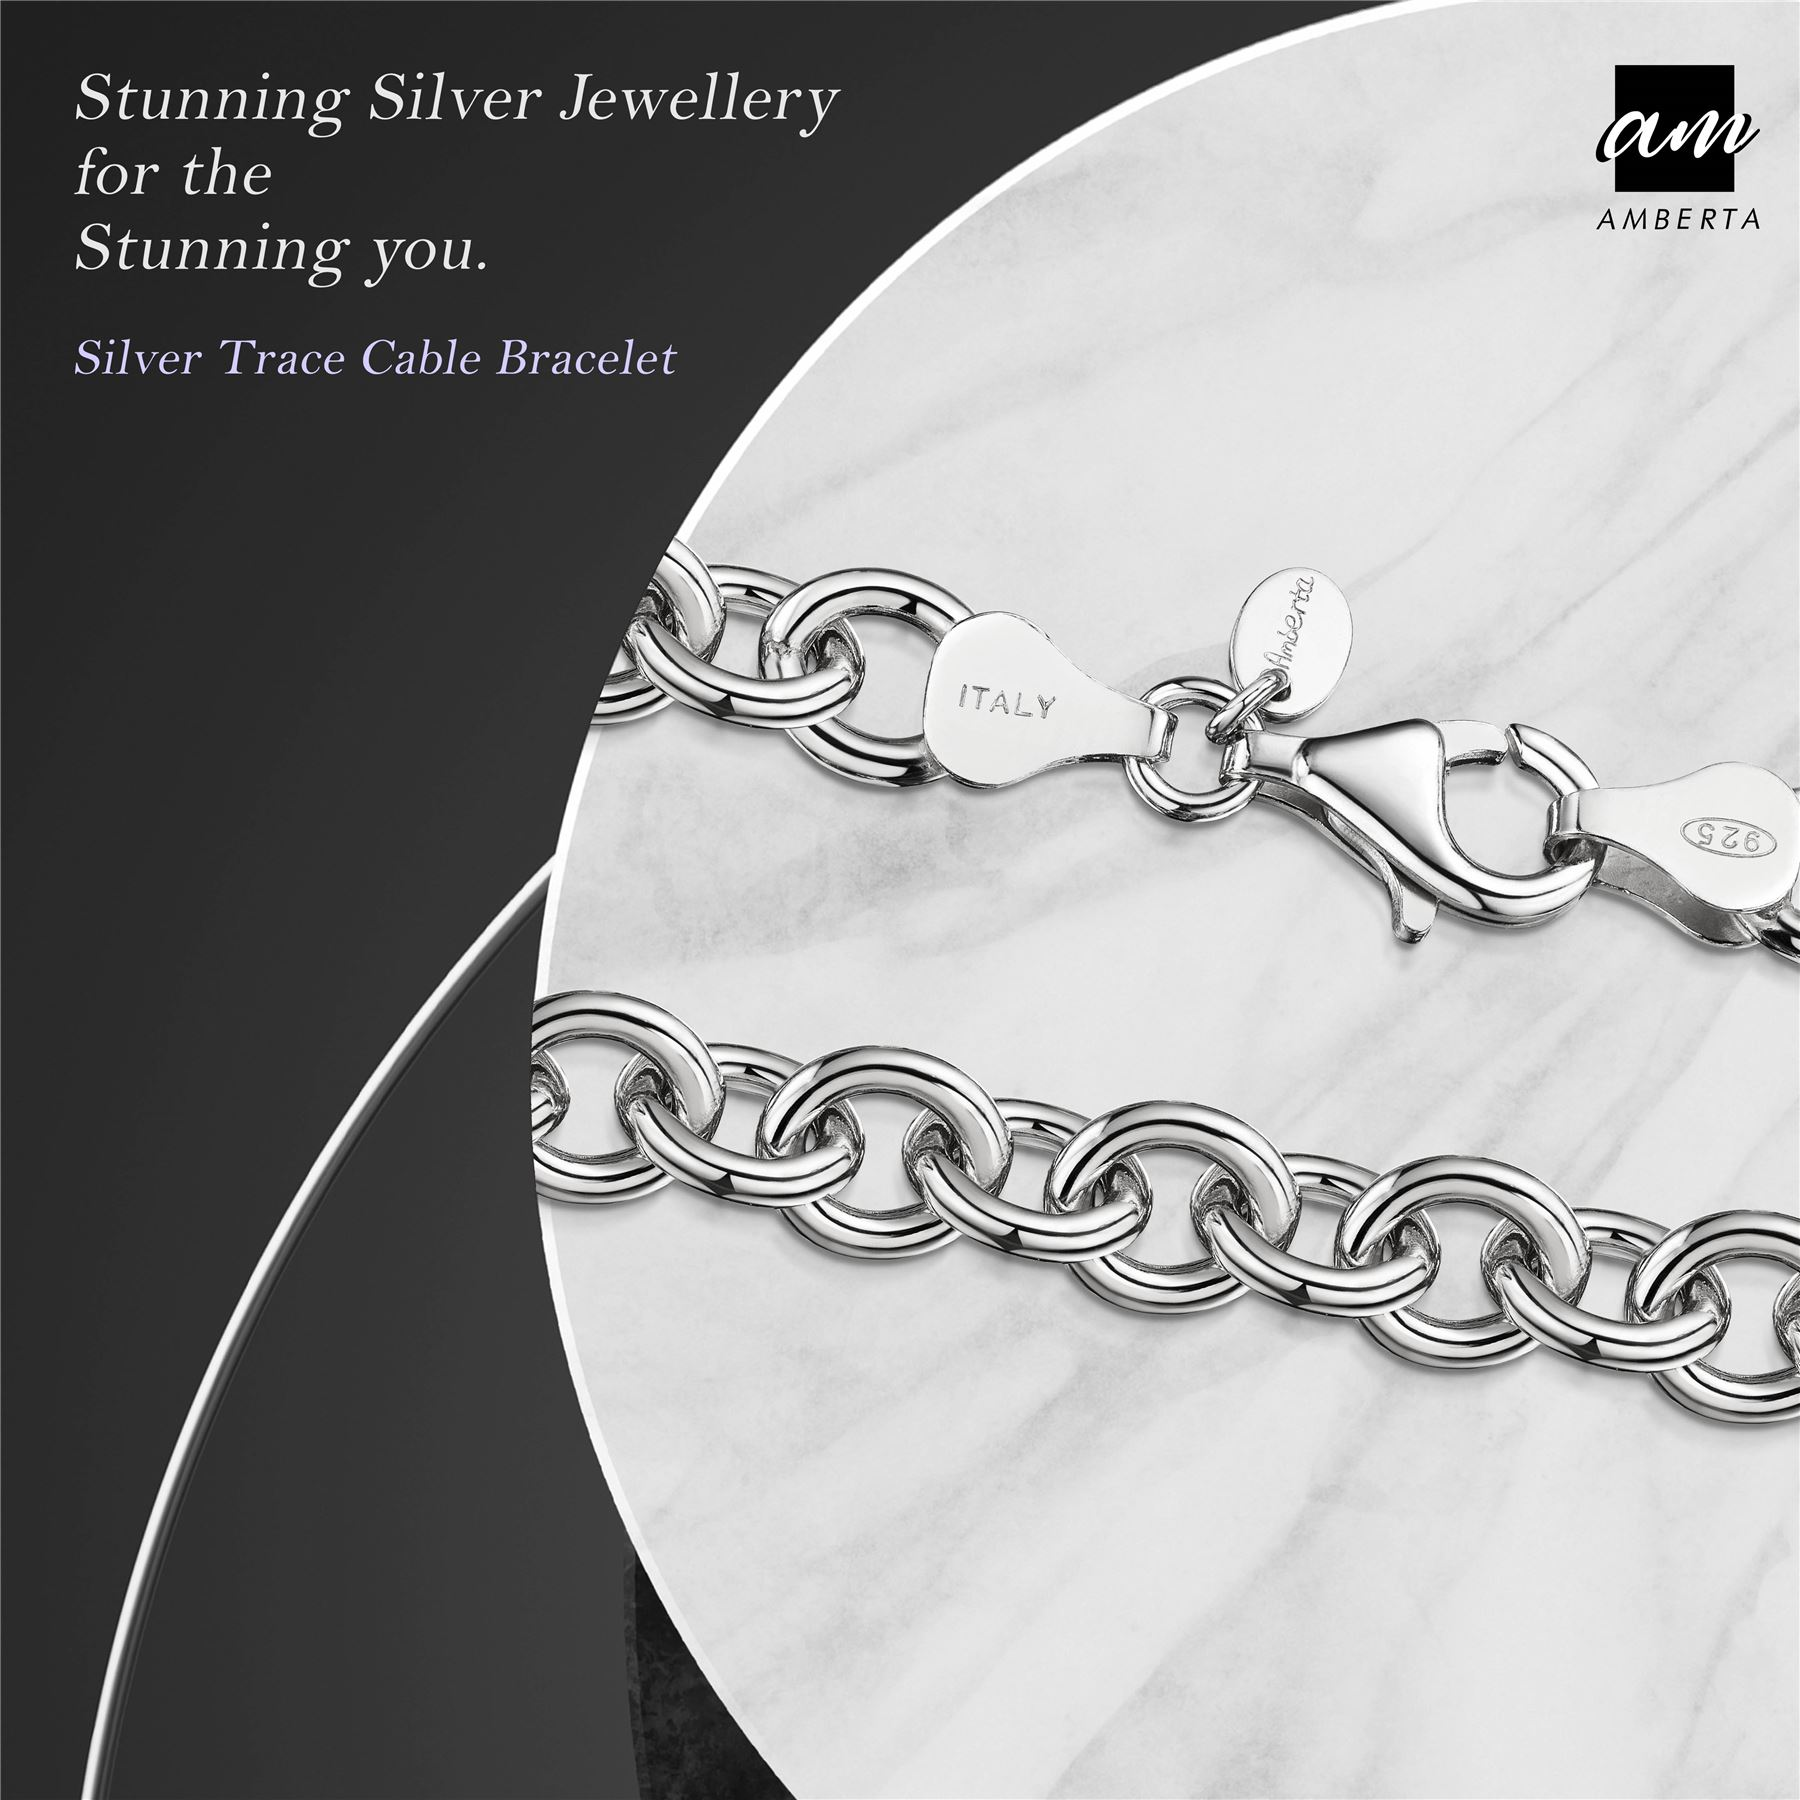 Amberta-Genuine-Real-925-Sterling-Silver-Chain-Bracelet-for-Women-from-Italy miniature 38